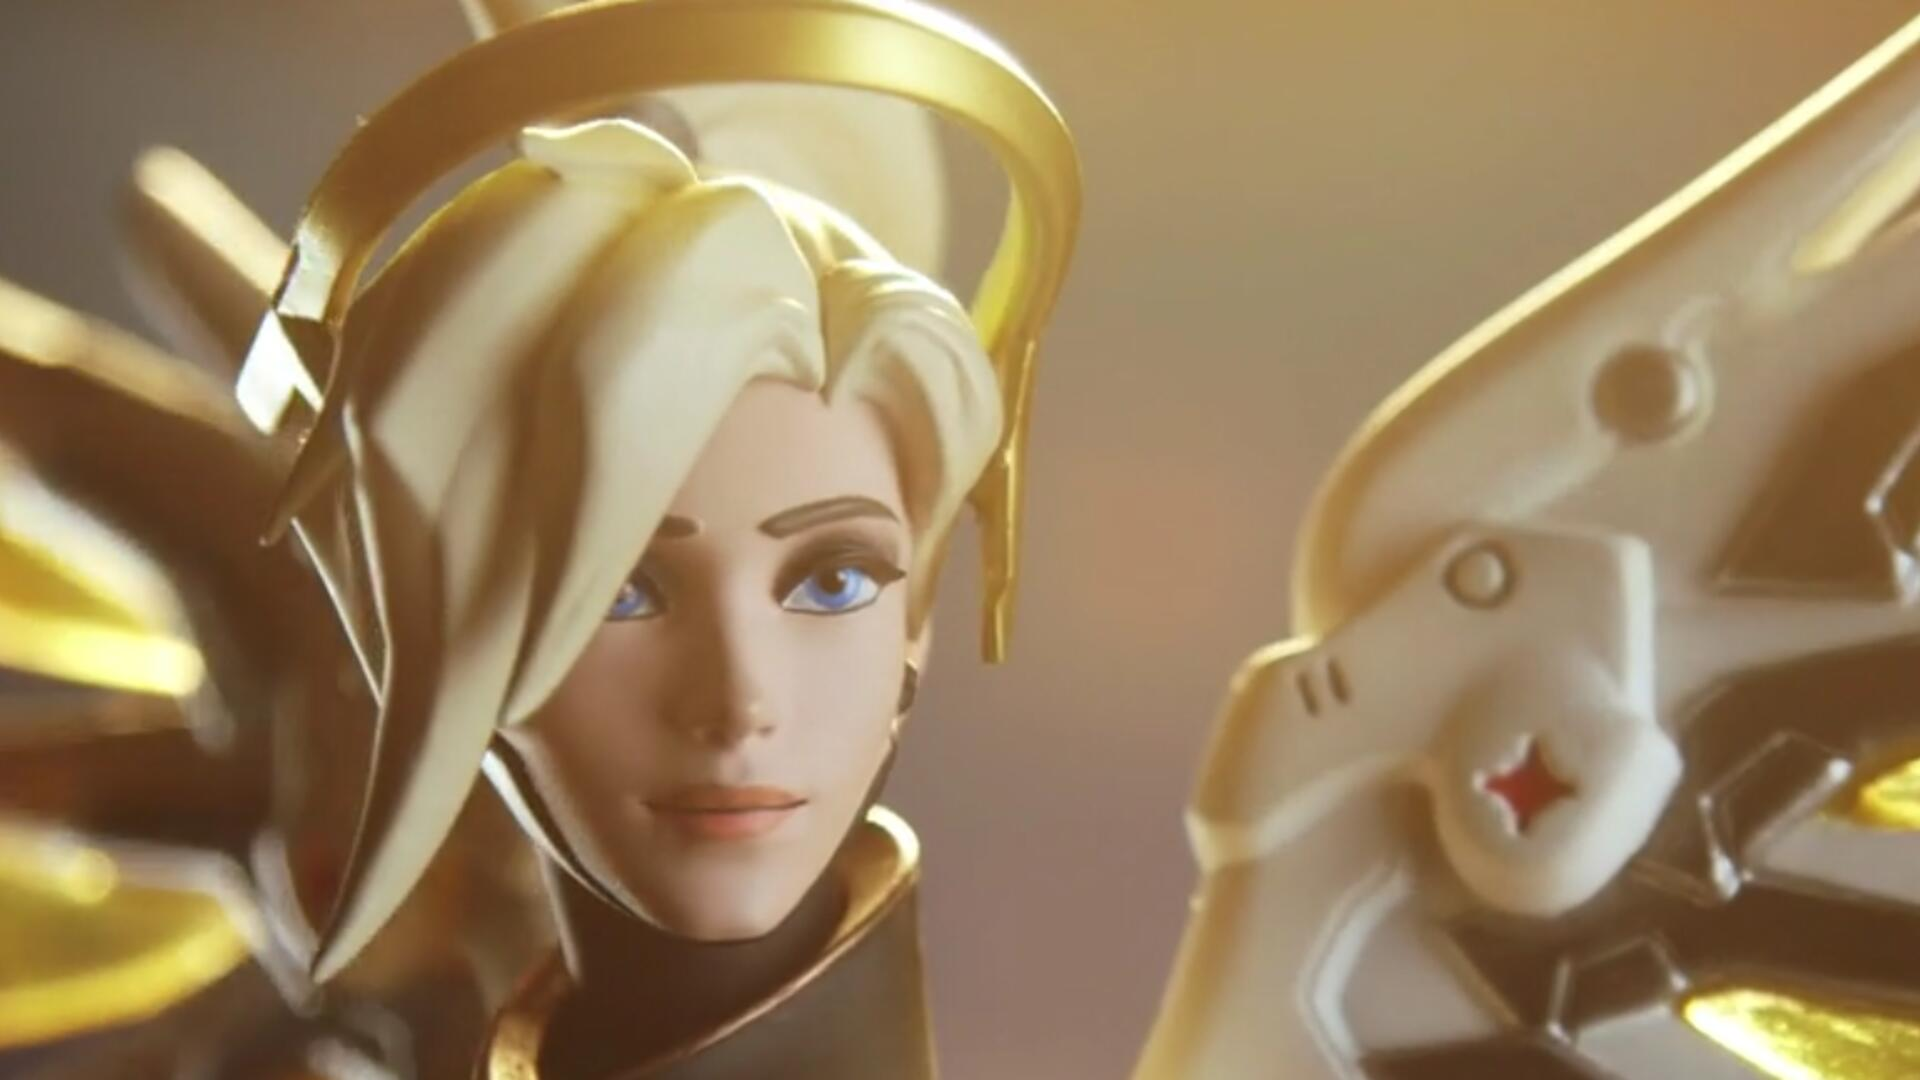 This Gorgeous Overwatch Mercy Statue Will Set You Back $175